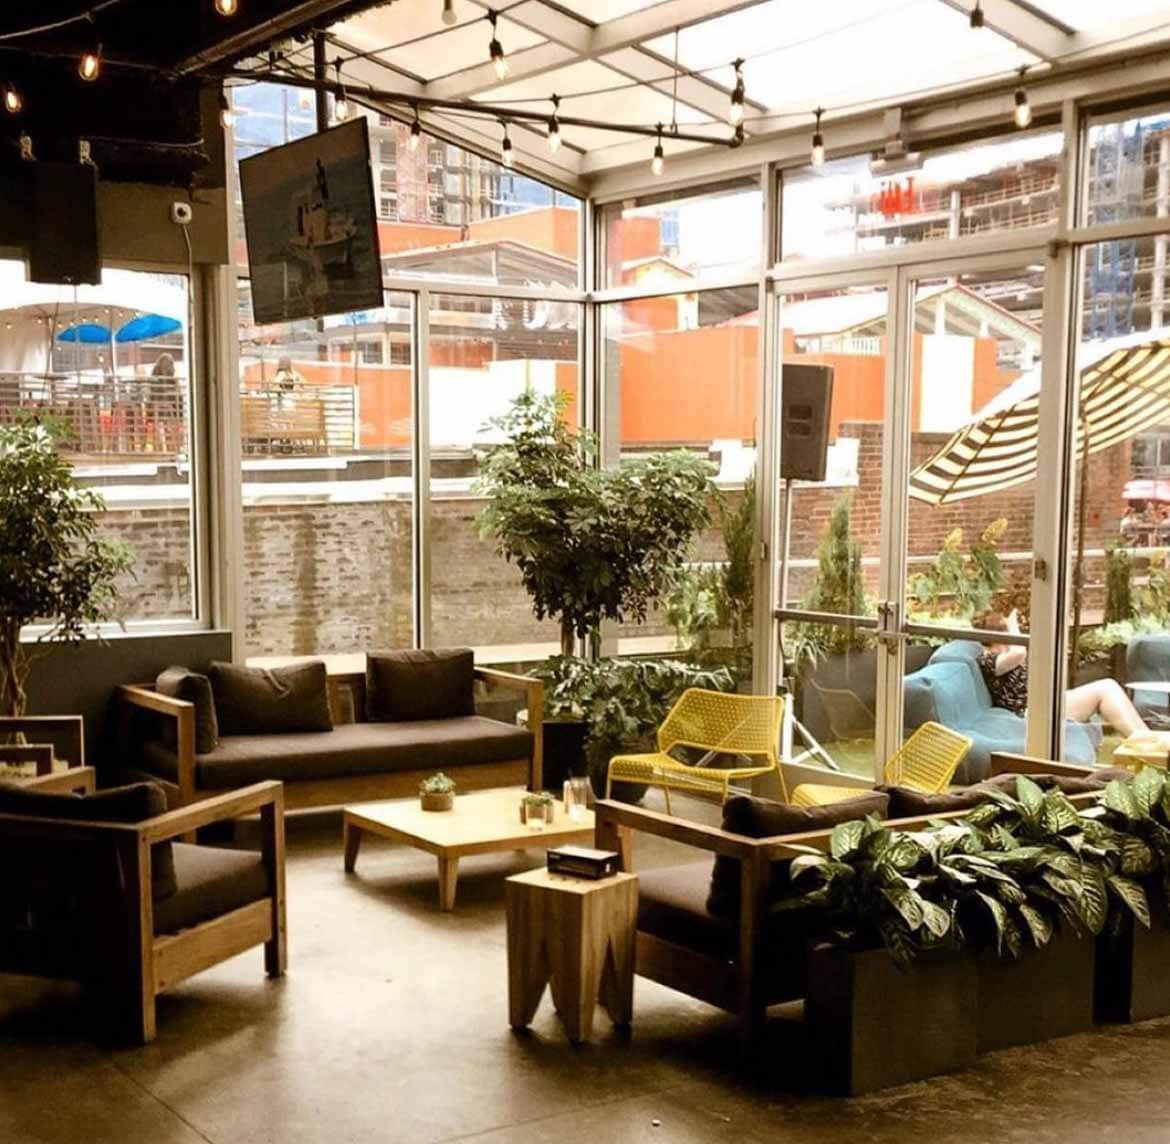 Bar at Downtown Sporting Club, one of the best rooftop bars on Broadway